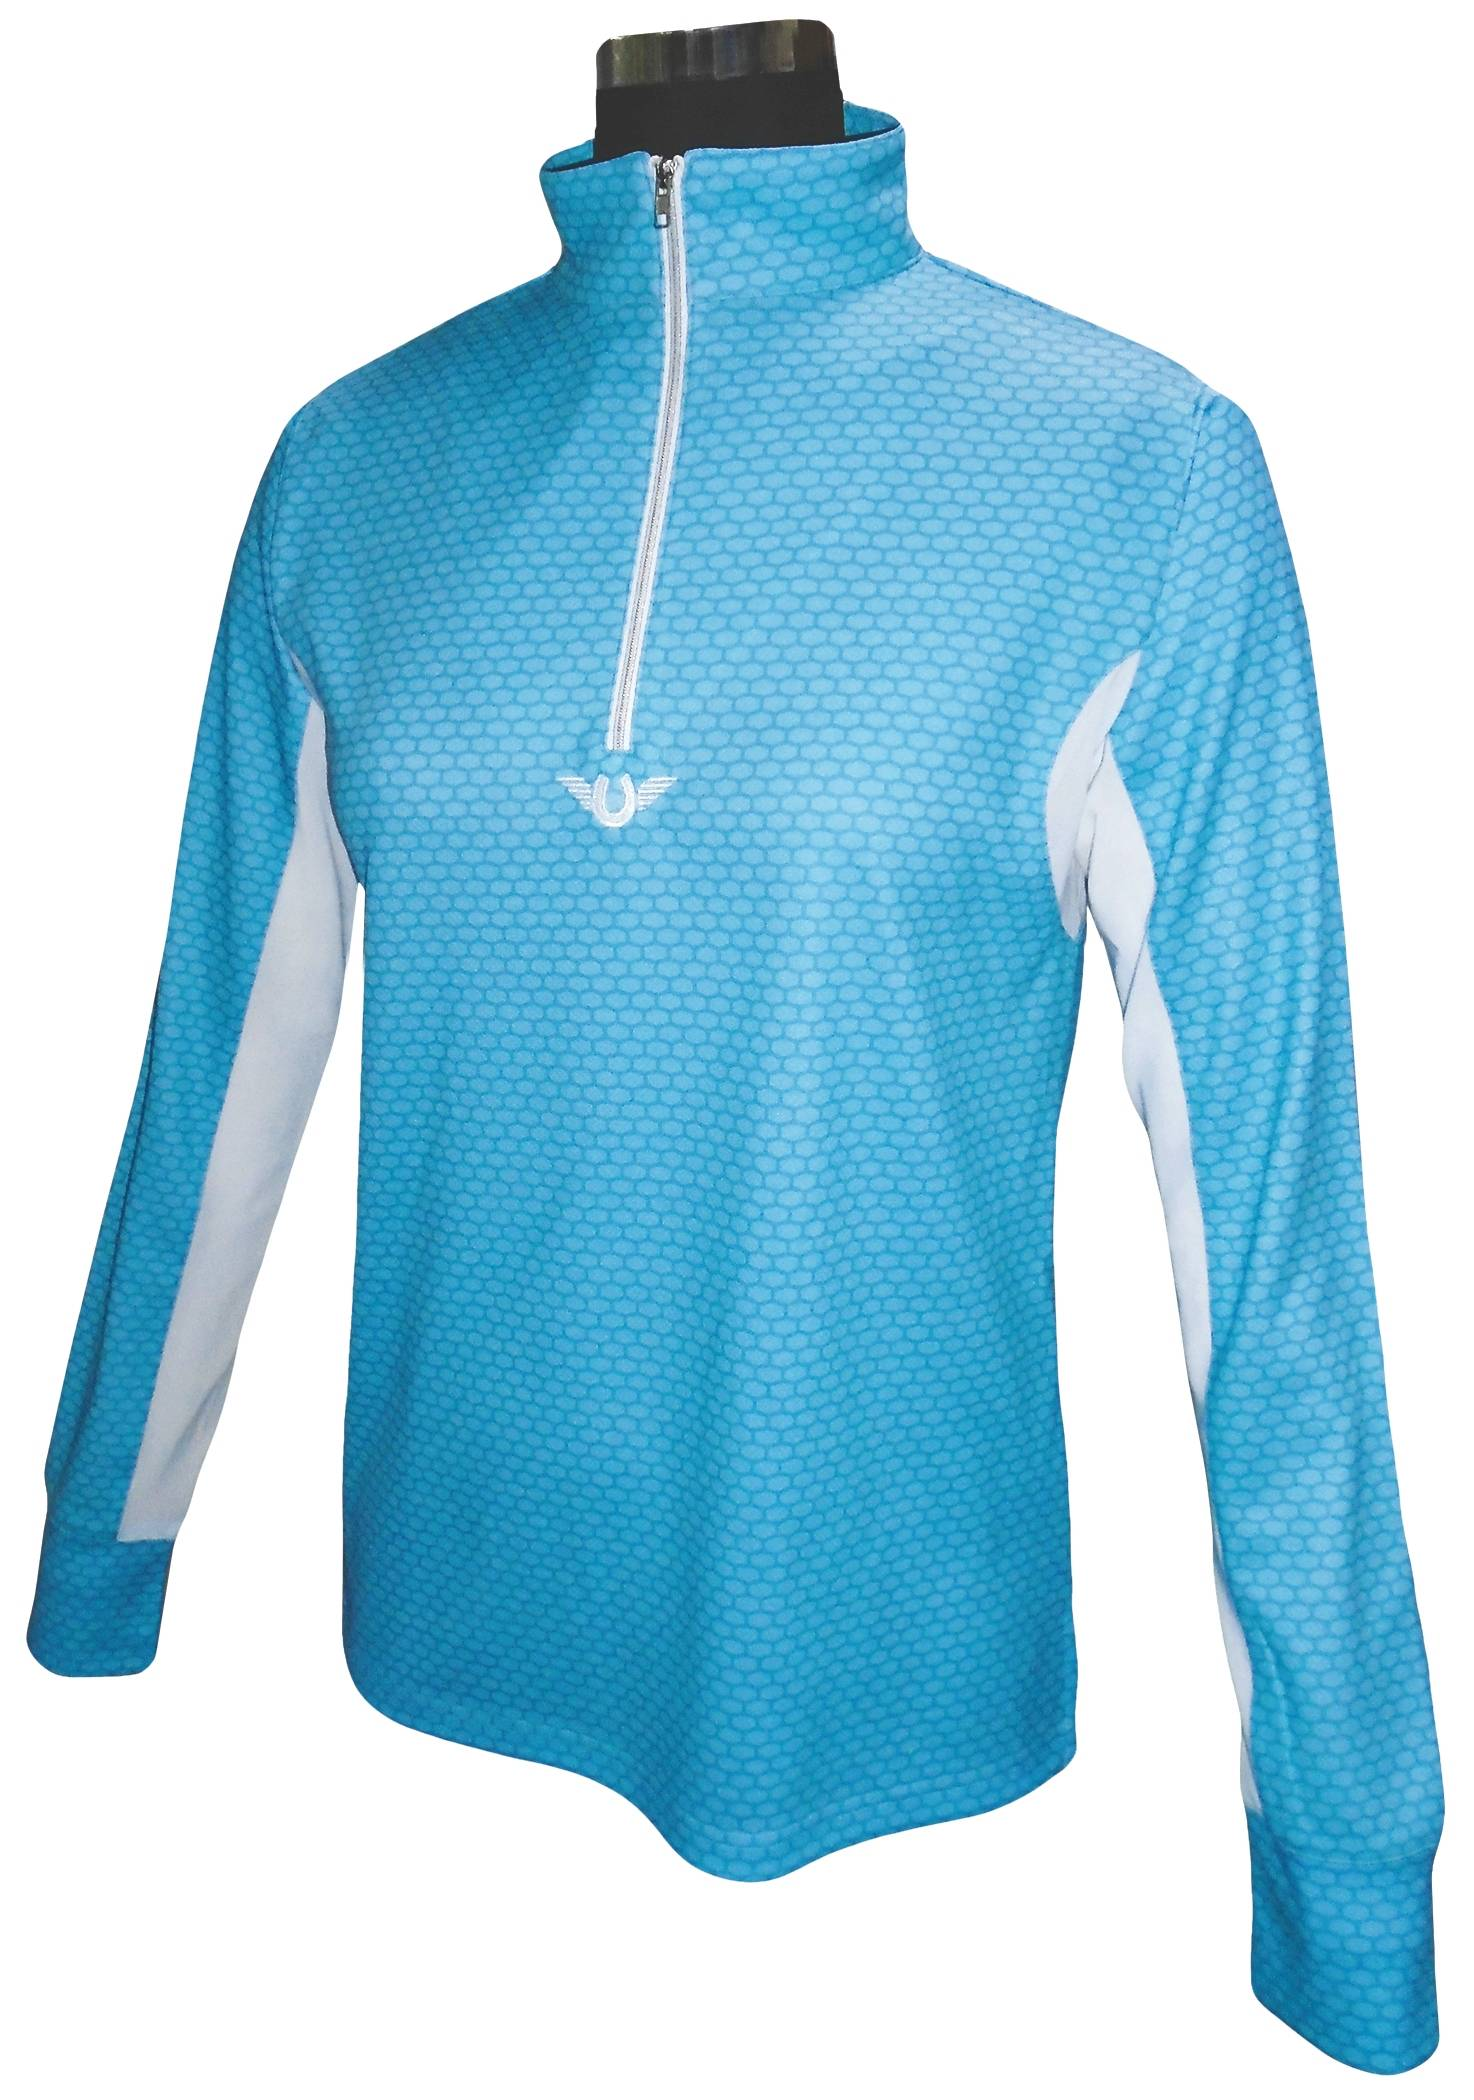 Tuffrider Neon Block Long Sleeve Technical Shirt -Ladies